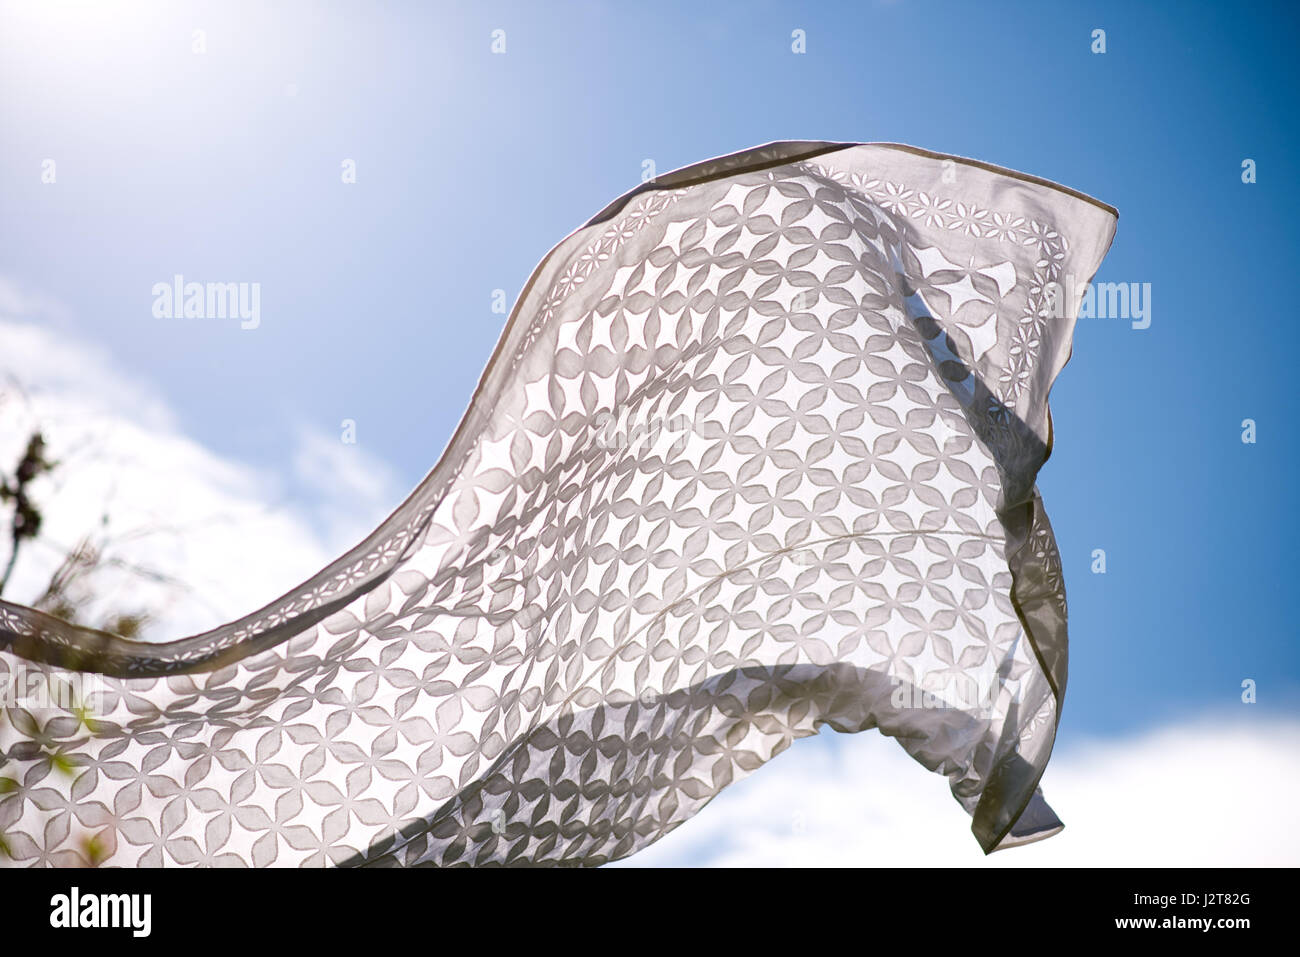 White table cloth/throw outside in the wind - Stock Image